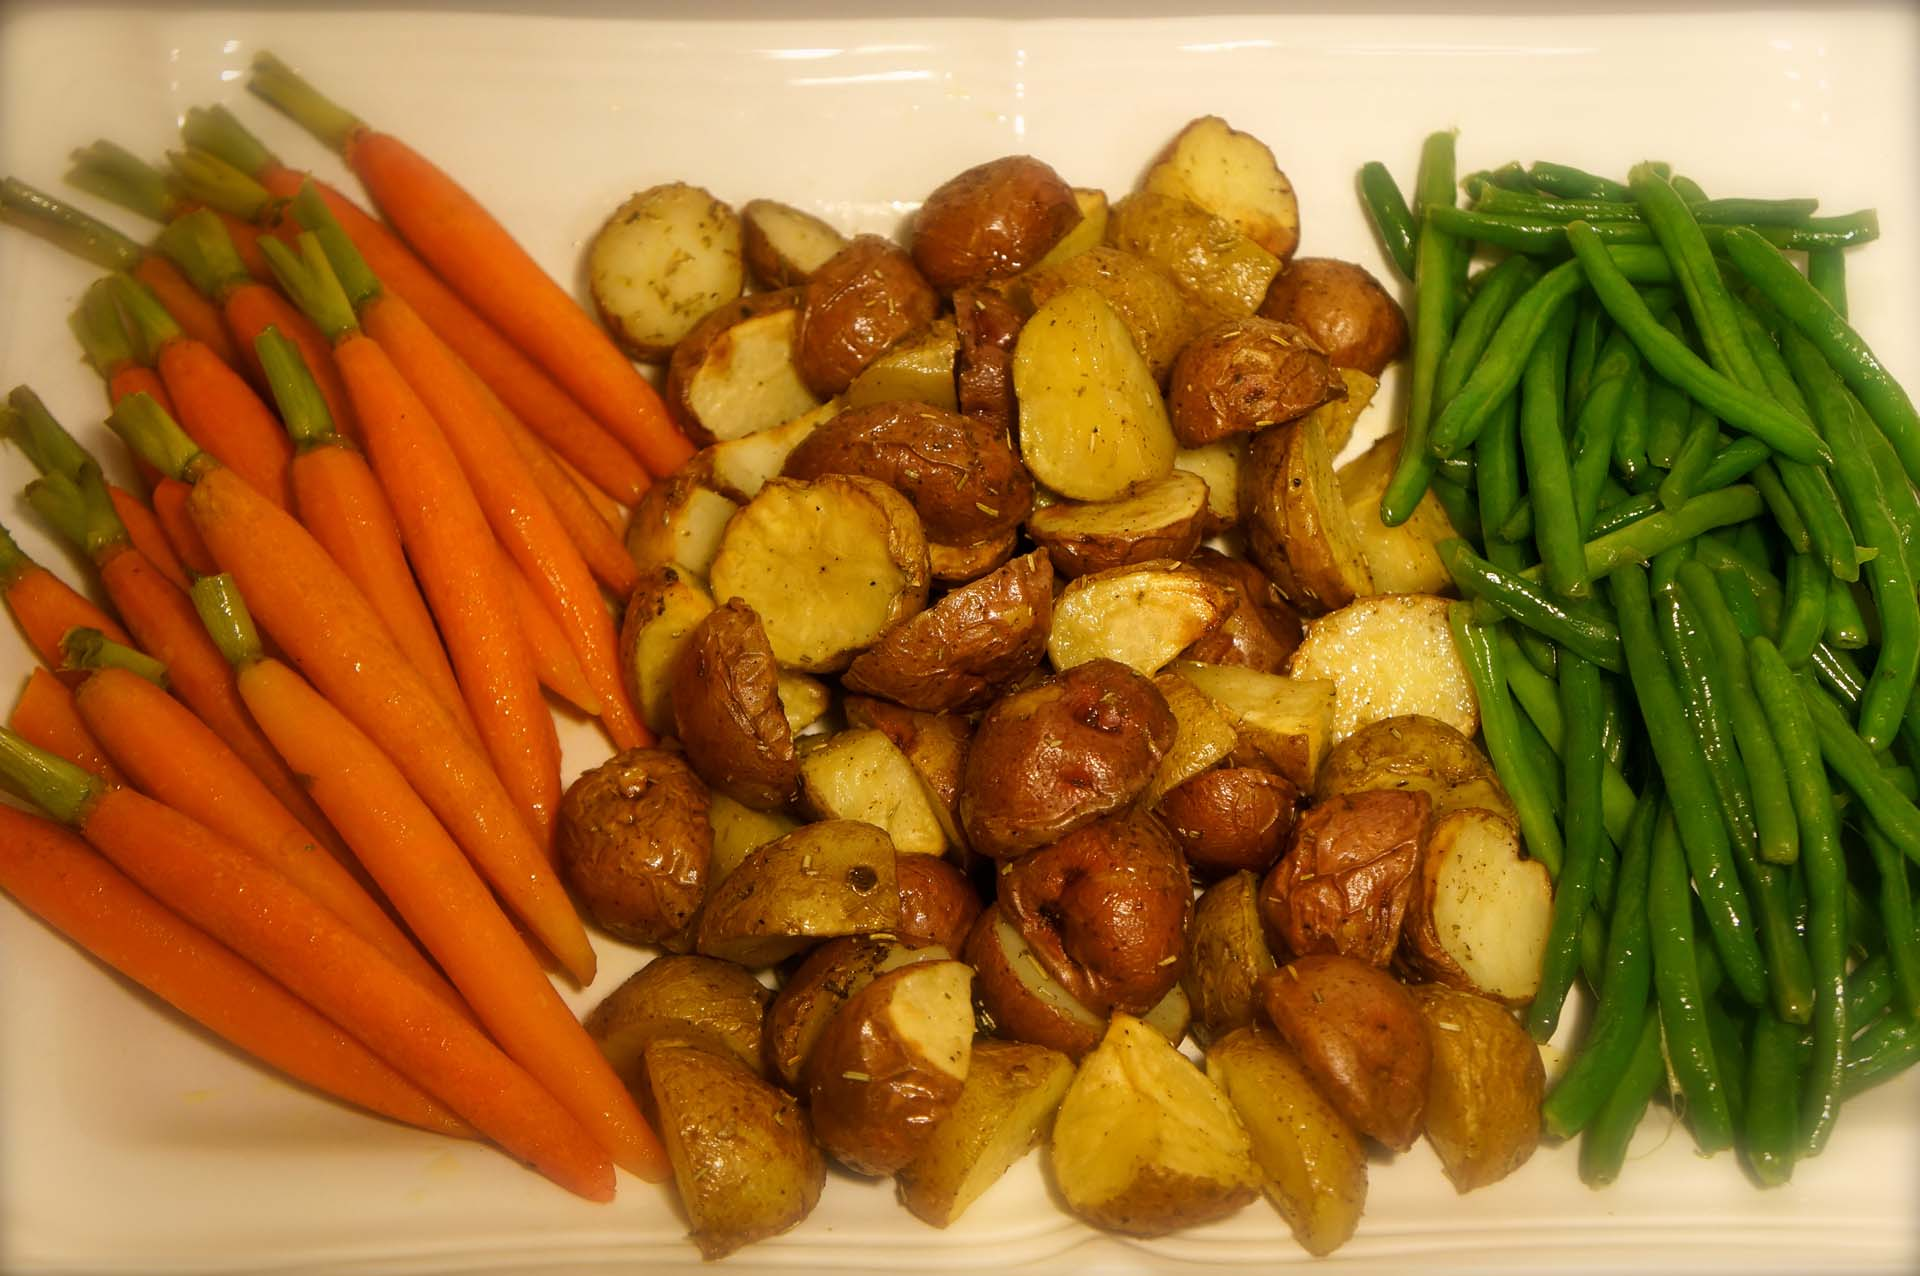 Steamed Vegetables and Roasted Potatoes